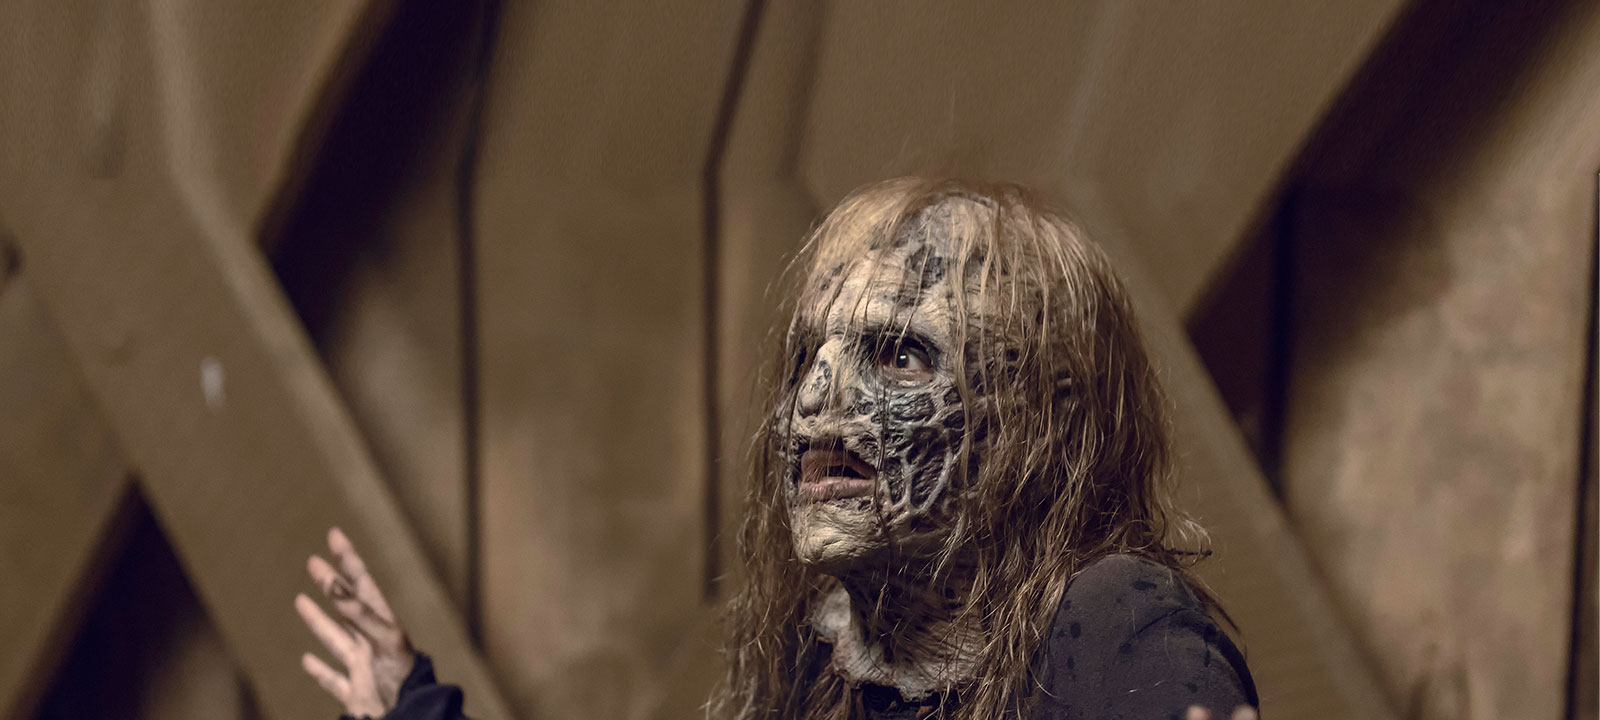 the-walking-dead-episode-909-lydia-mcclincy-post-800×600